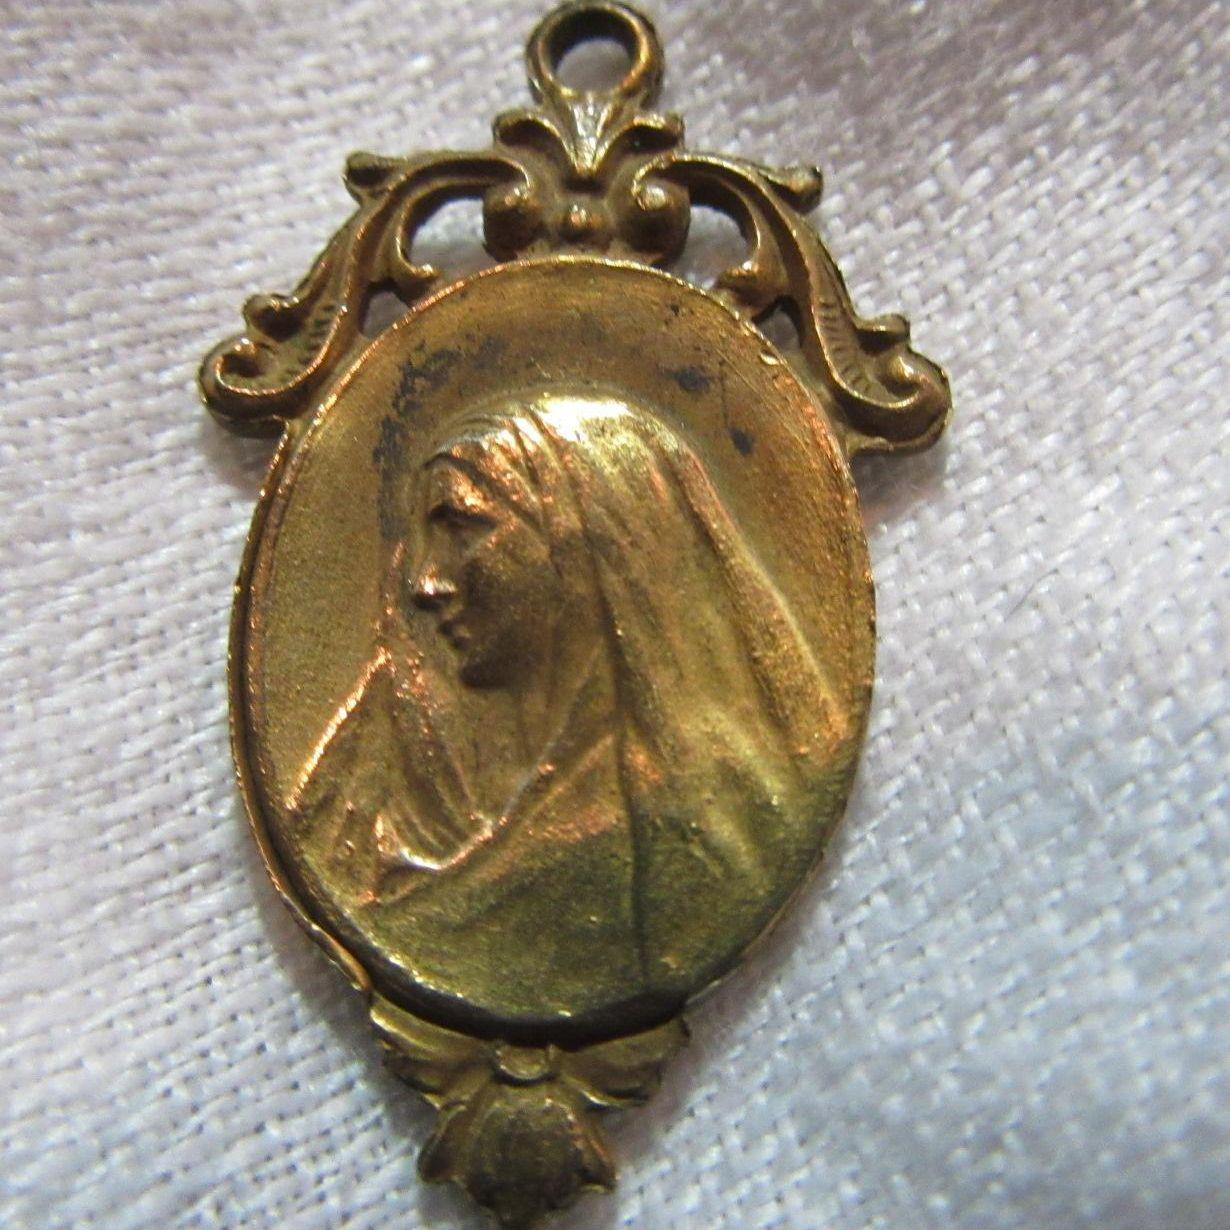 Virgin Mary Our Lady of Sorrows and Jesus & Cross Catholic Medal